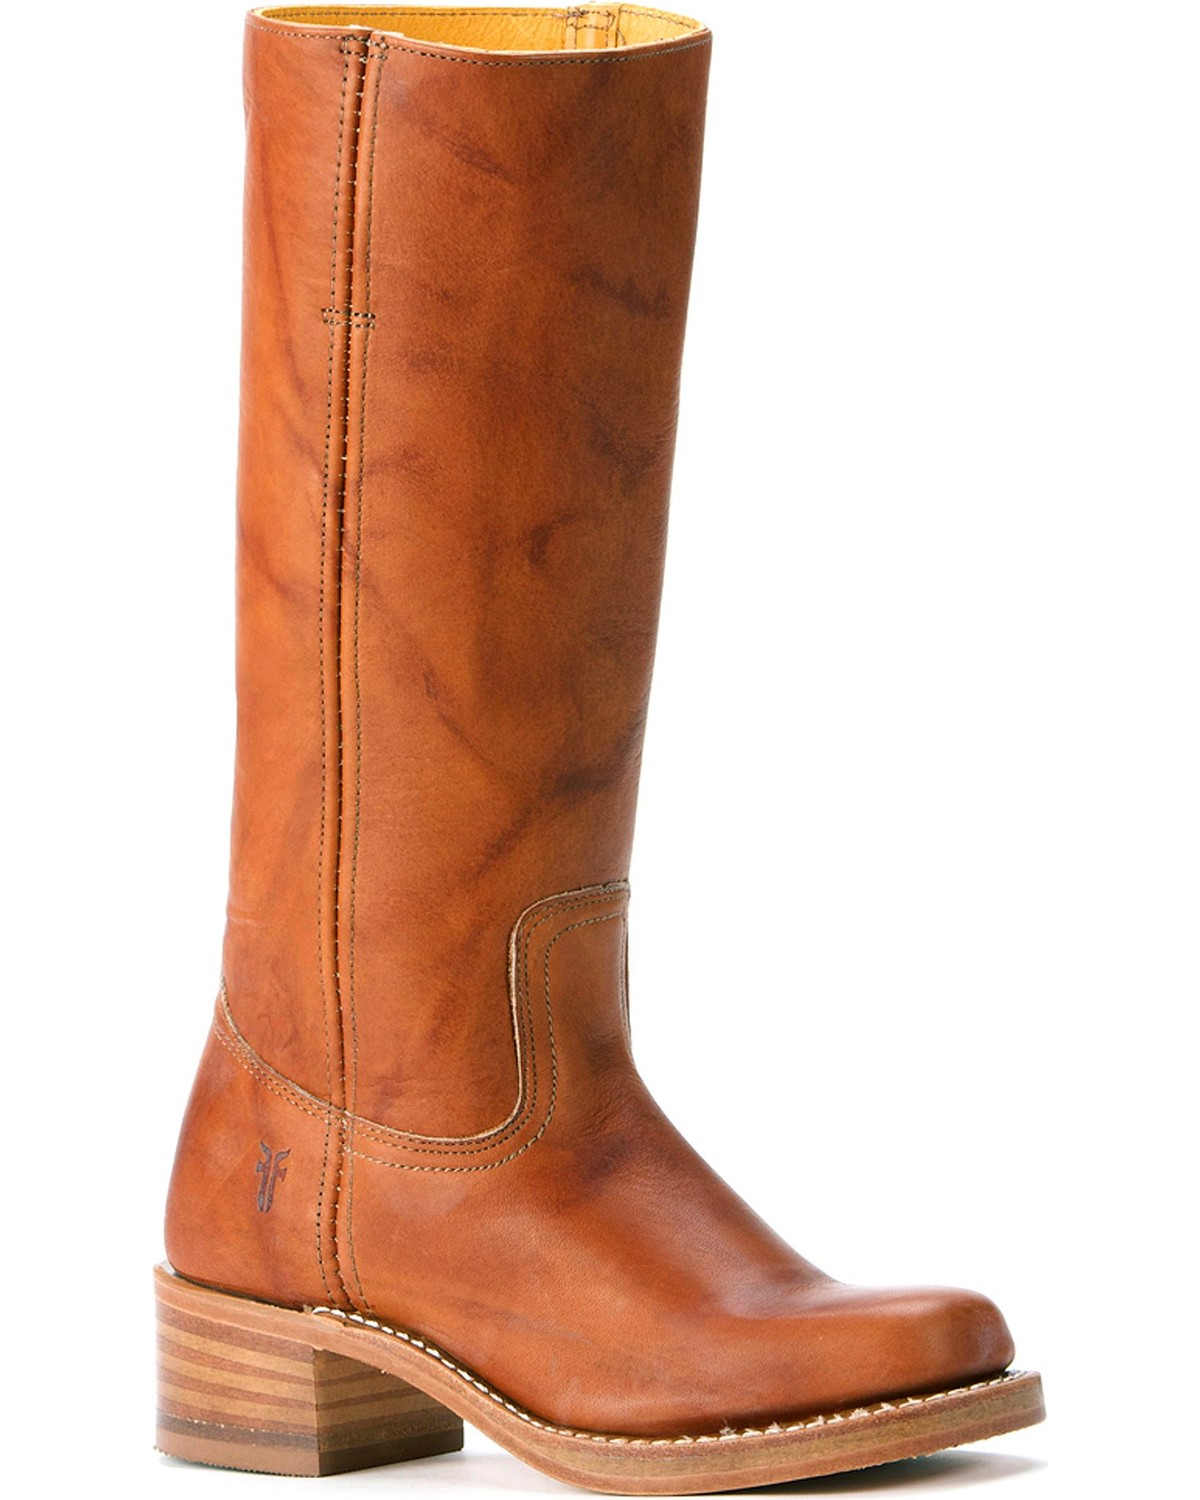 79aef999e813b Zoomed Image Frye Women's Campus Fashion Boots, Saddle Tan, hi-res